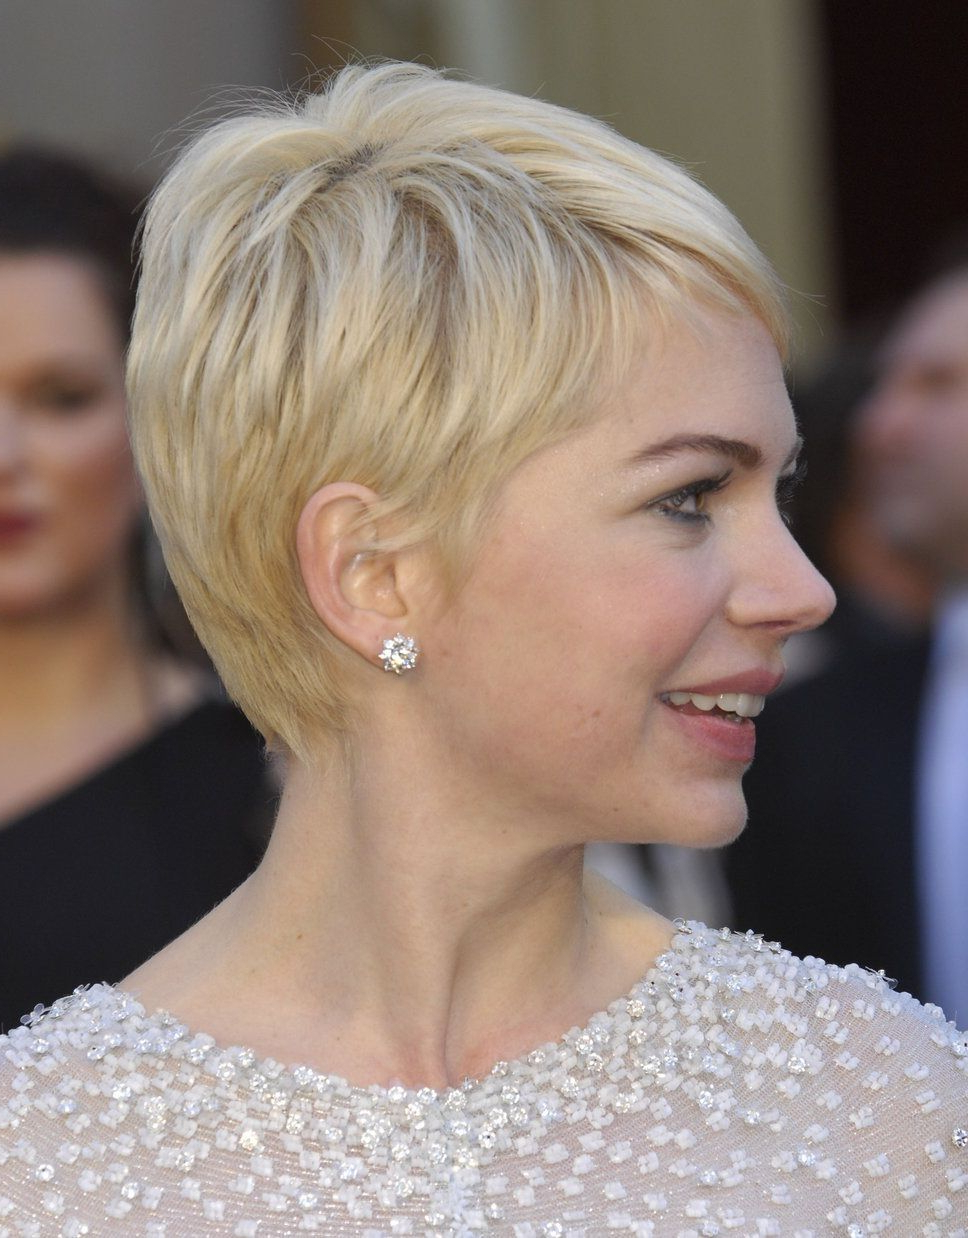 Michelle Williams Pertaining To Latest Michelle Williams Pixie Haircuts (View 7 of 20)